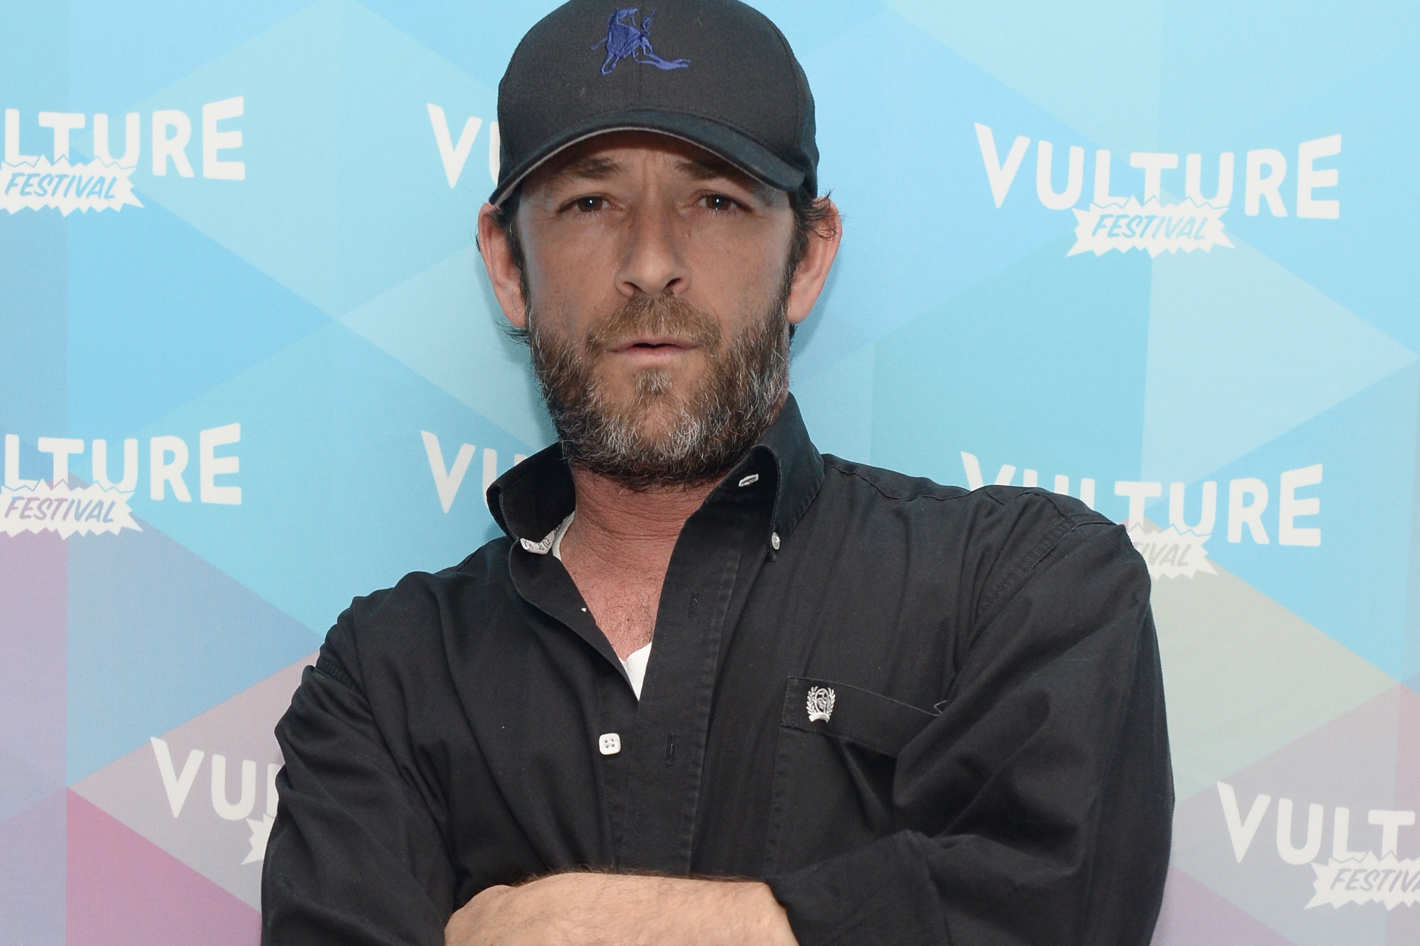 Luke Perry at a photoshoot. He is wearing a black shirt and a black golfing hat